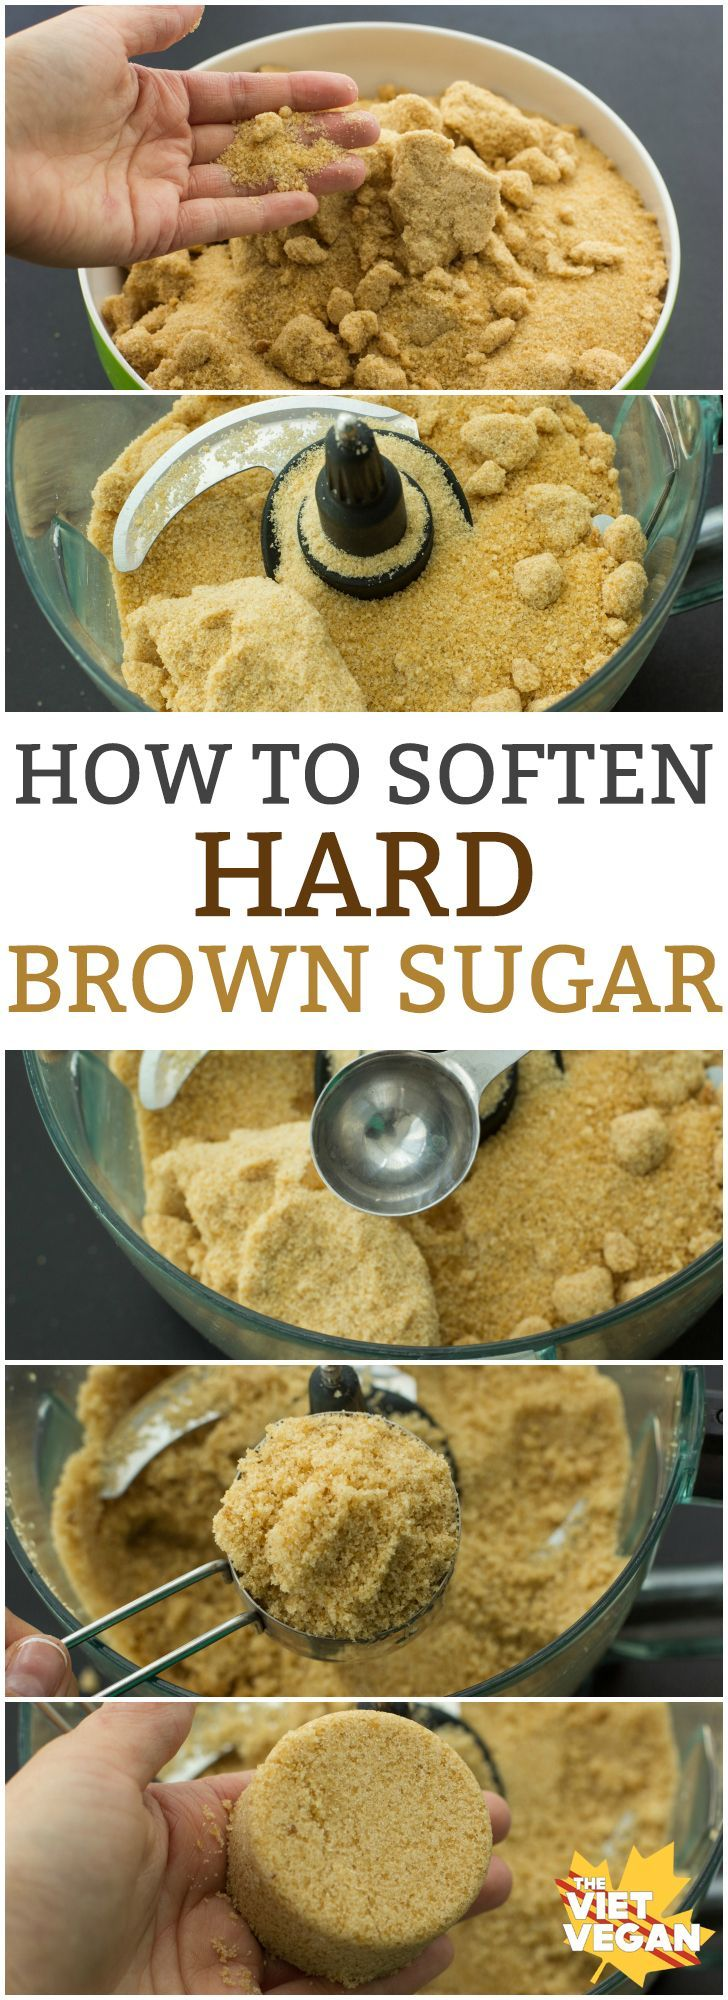 How to Soften Hard Brown Sugar | The Viet Vegan | All you need is 5 minutes and a food processor!